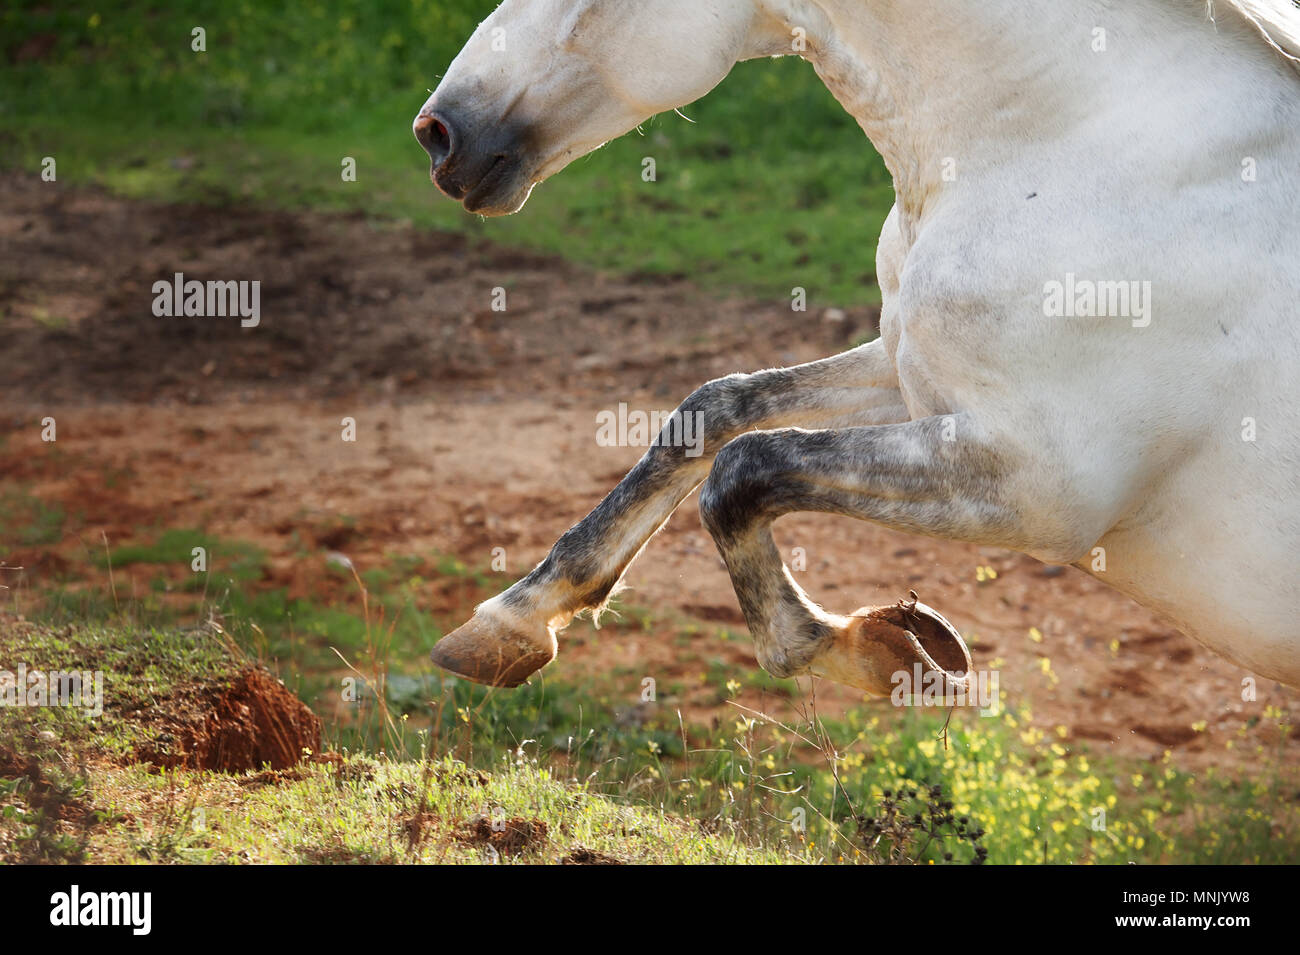 running  sandy Andalusian stallion in olive garden. close up - Stock Image